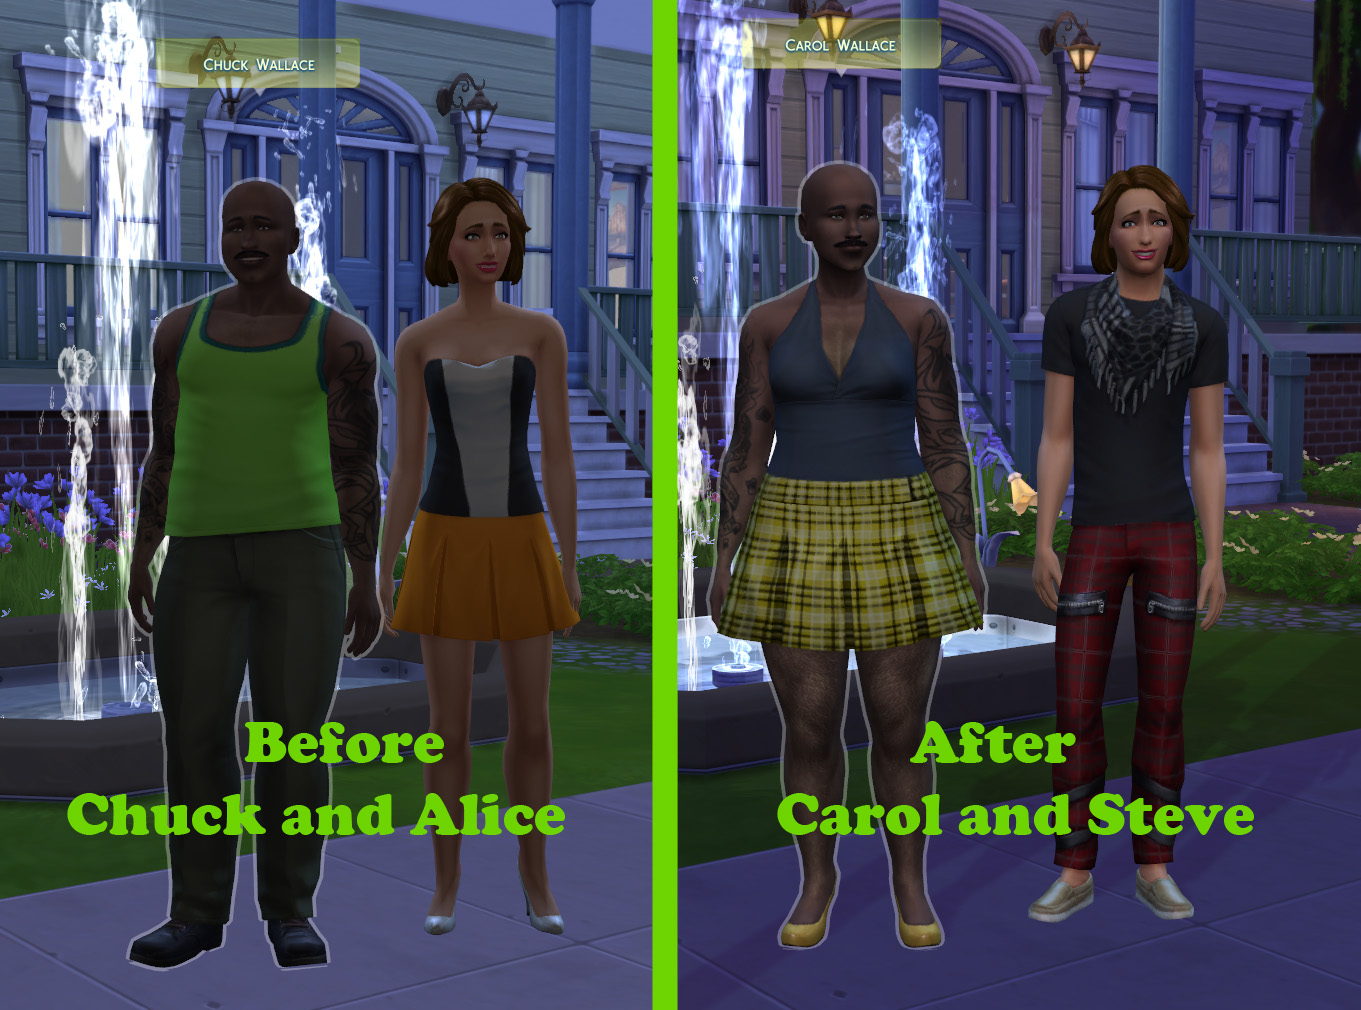 The Sims 4 Mods: 9 Of The Most Helpful Mods Created So Far | Player One